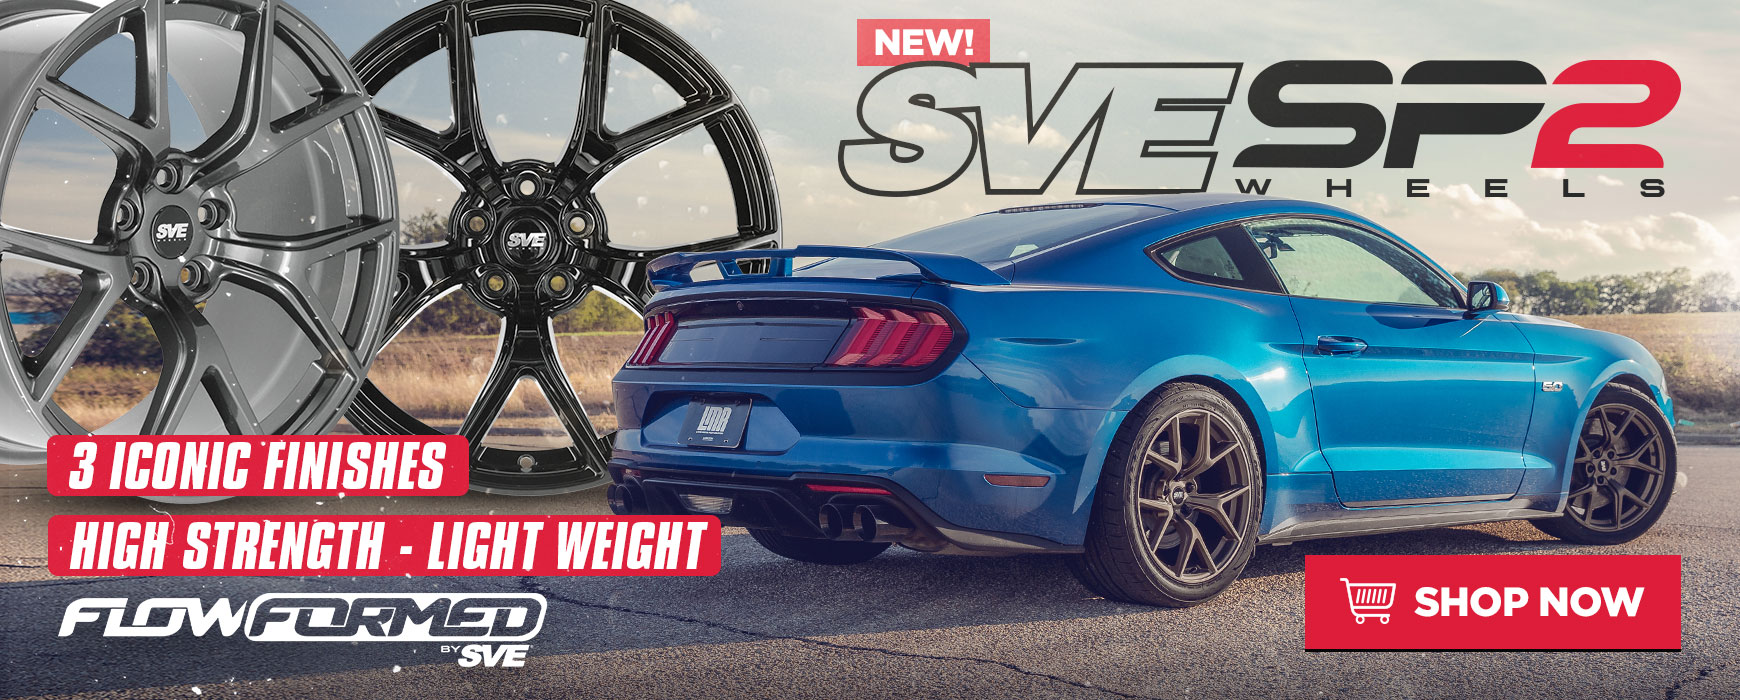 Sve sp2 mustang wheels